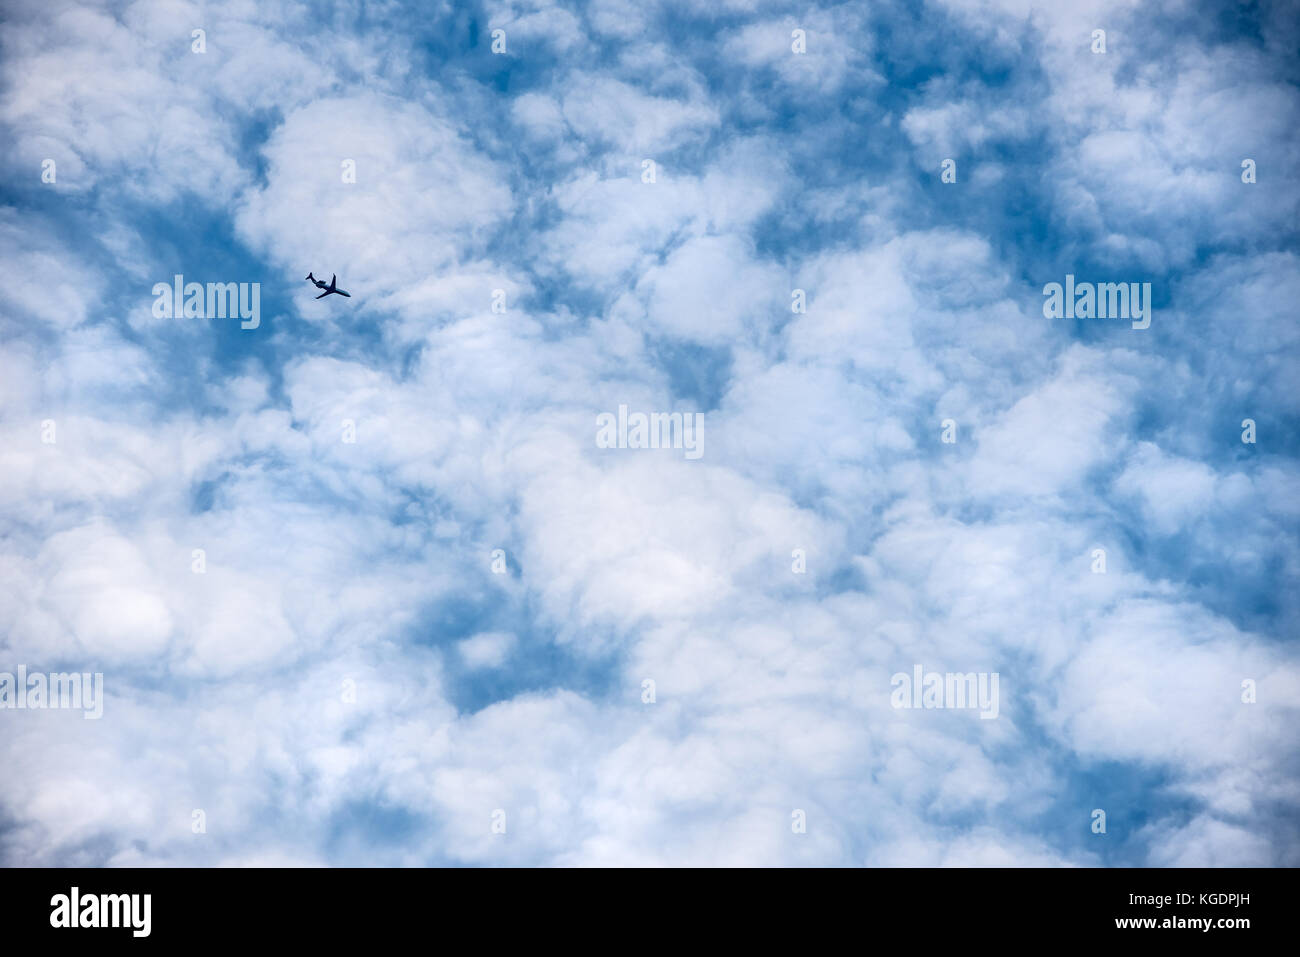 Passenger airline jet flying high overhead against a backdrop of white puffy clouds resembling cotton balls. (USA) - Stock Image